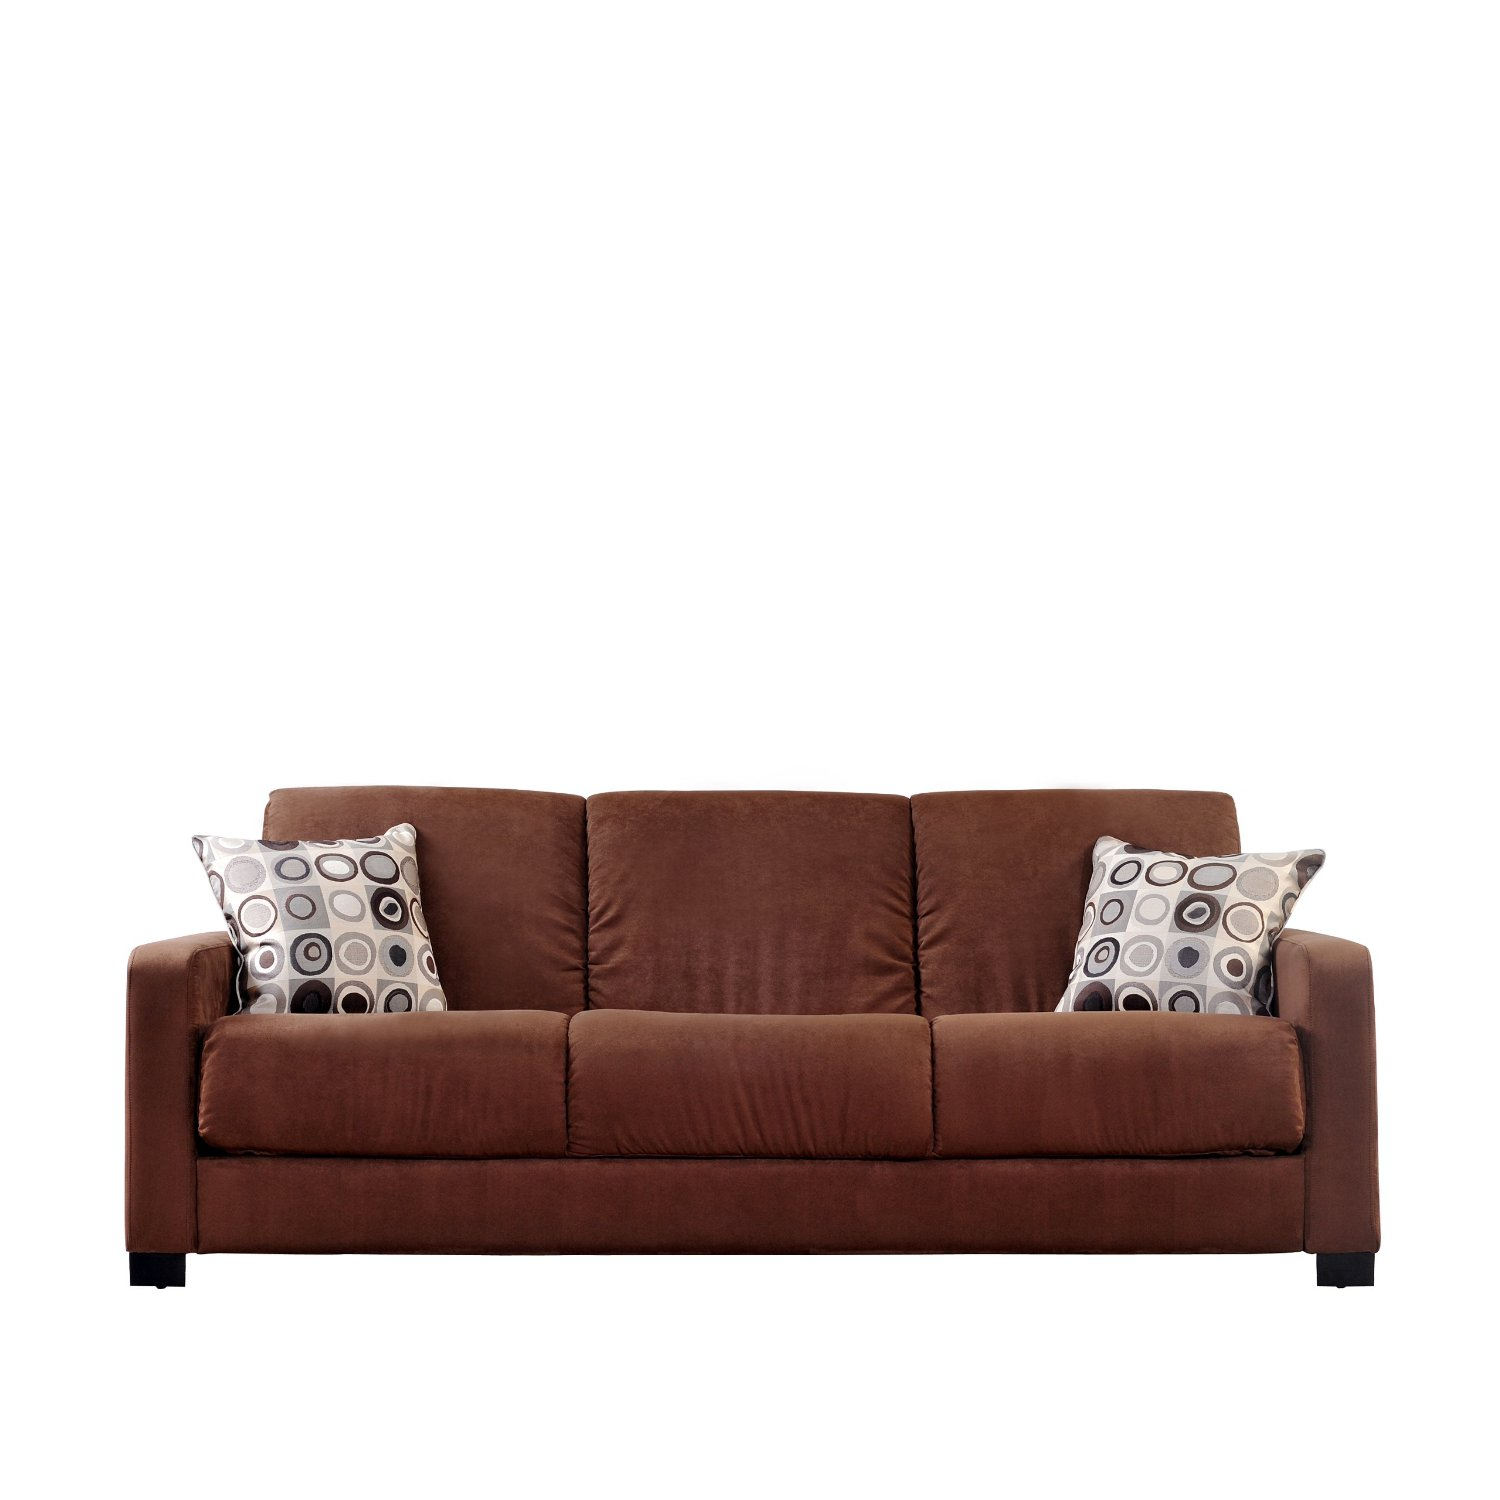 Buy cheap sofa cheap sectional sofa for Cheap sectional couch